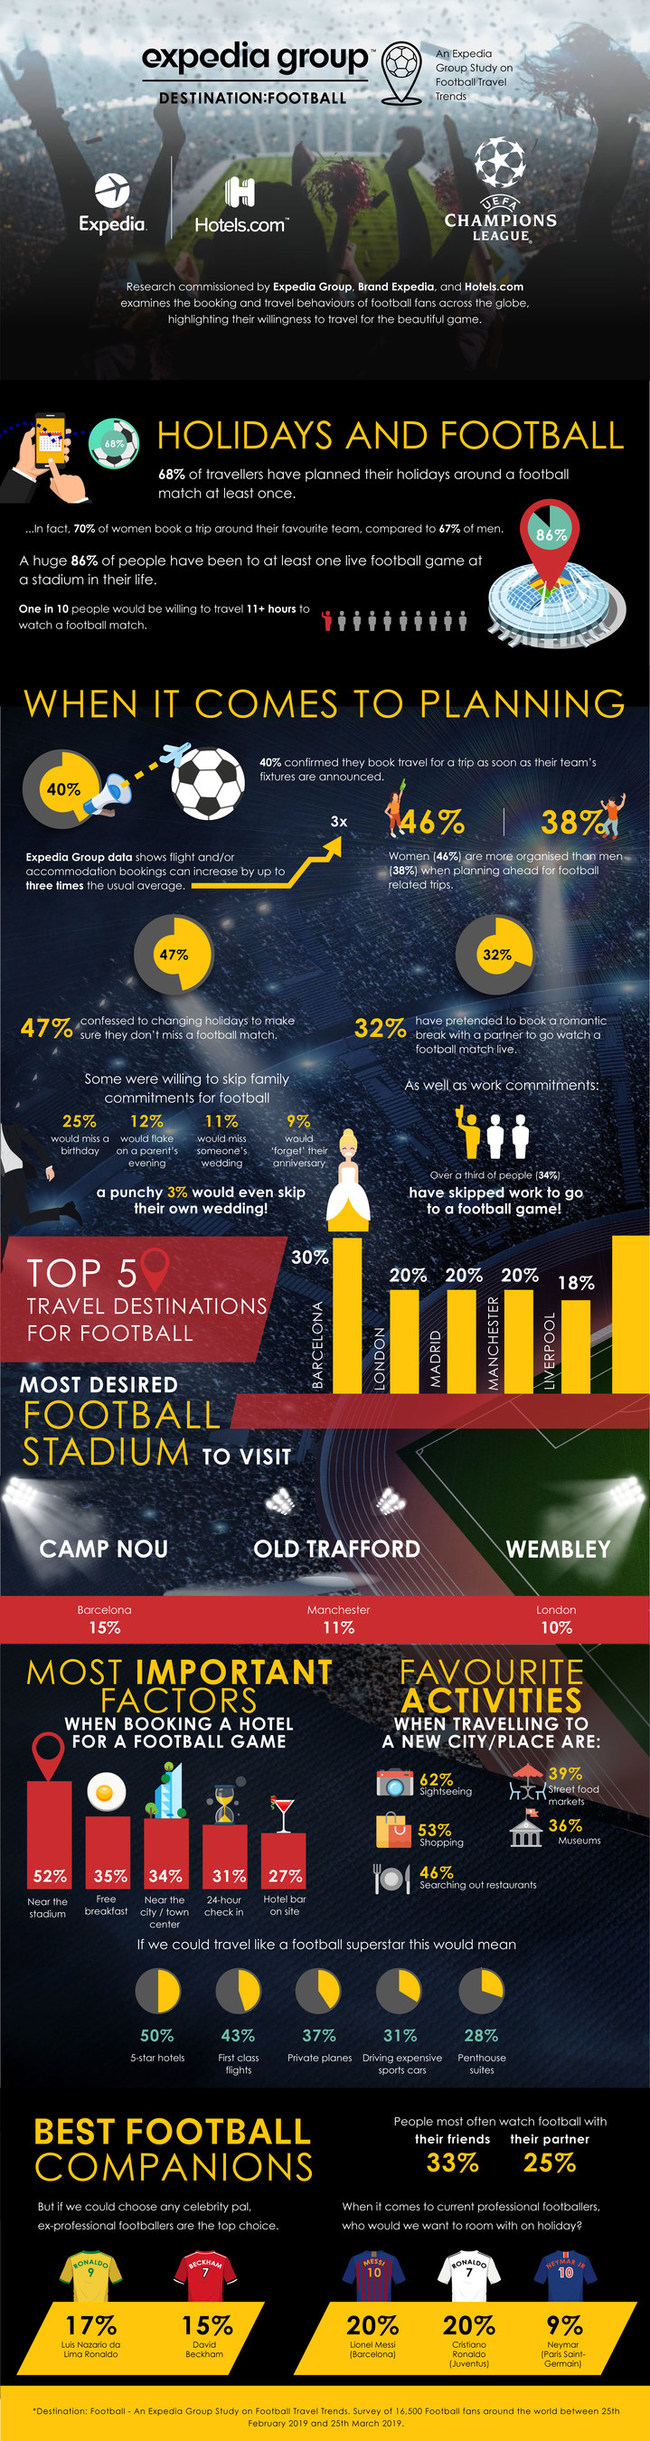 Destination: Football - An Expedia Group Study on Football Travel Trends